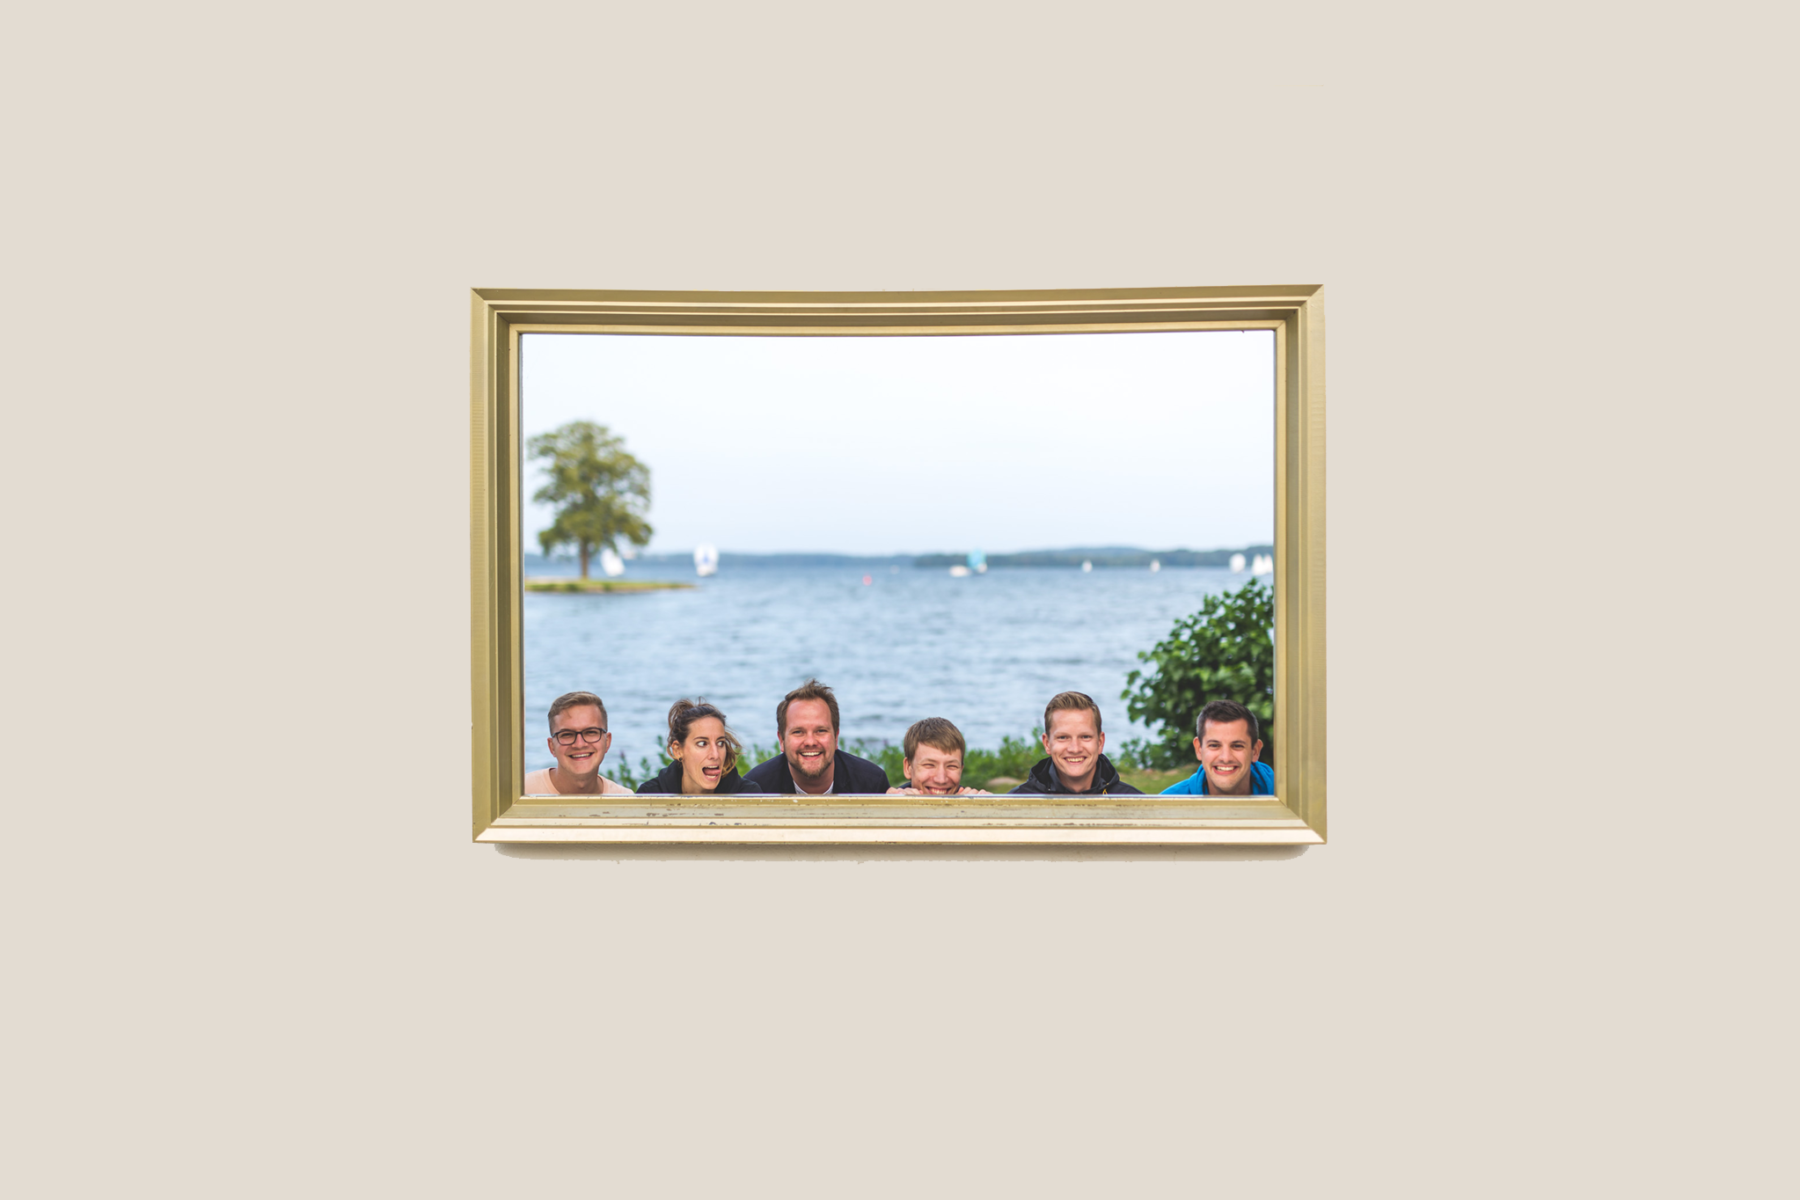 required Team in a Frame